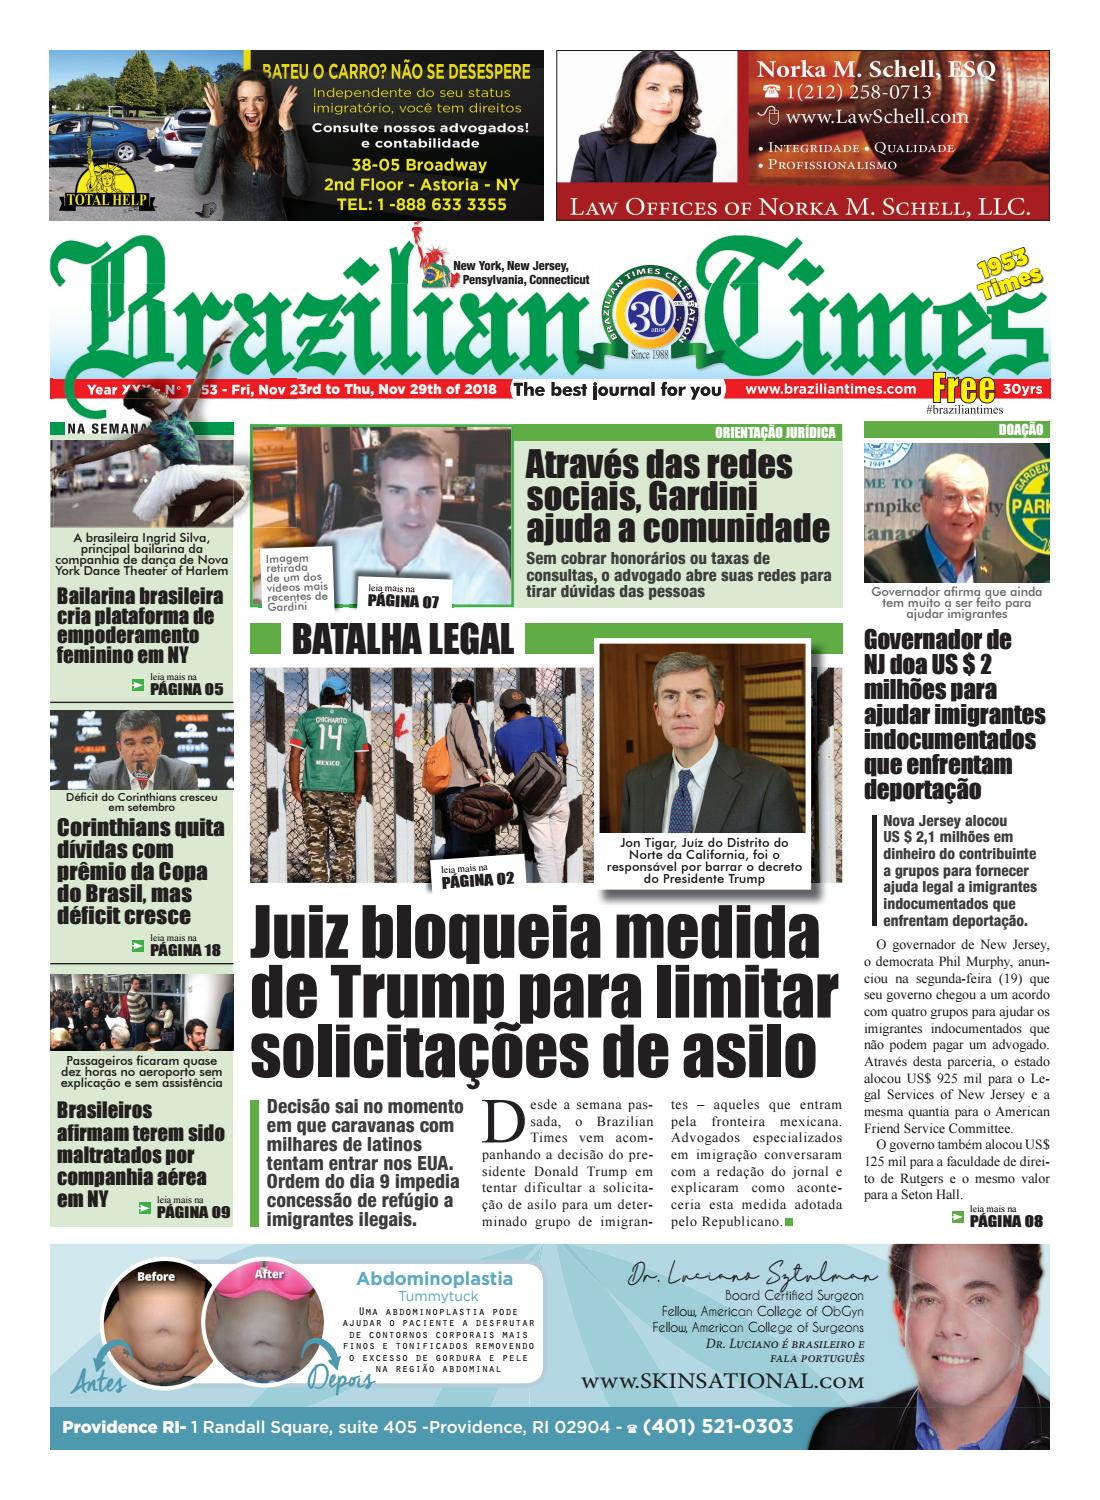 NY 1953 by The Brazilian Times Newspaper - issuu 9b2dc7e2ad7